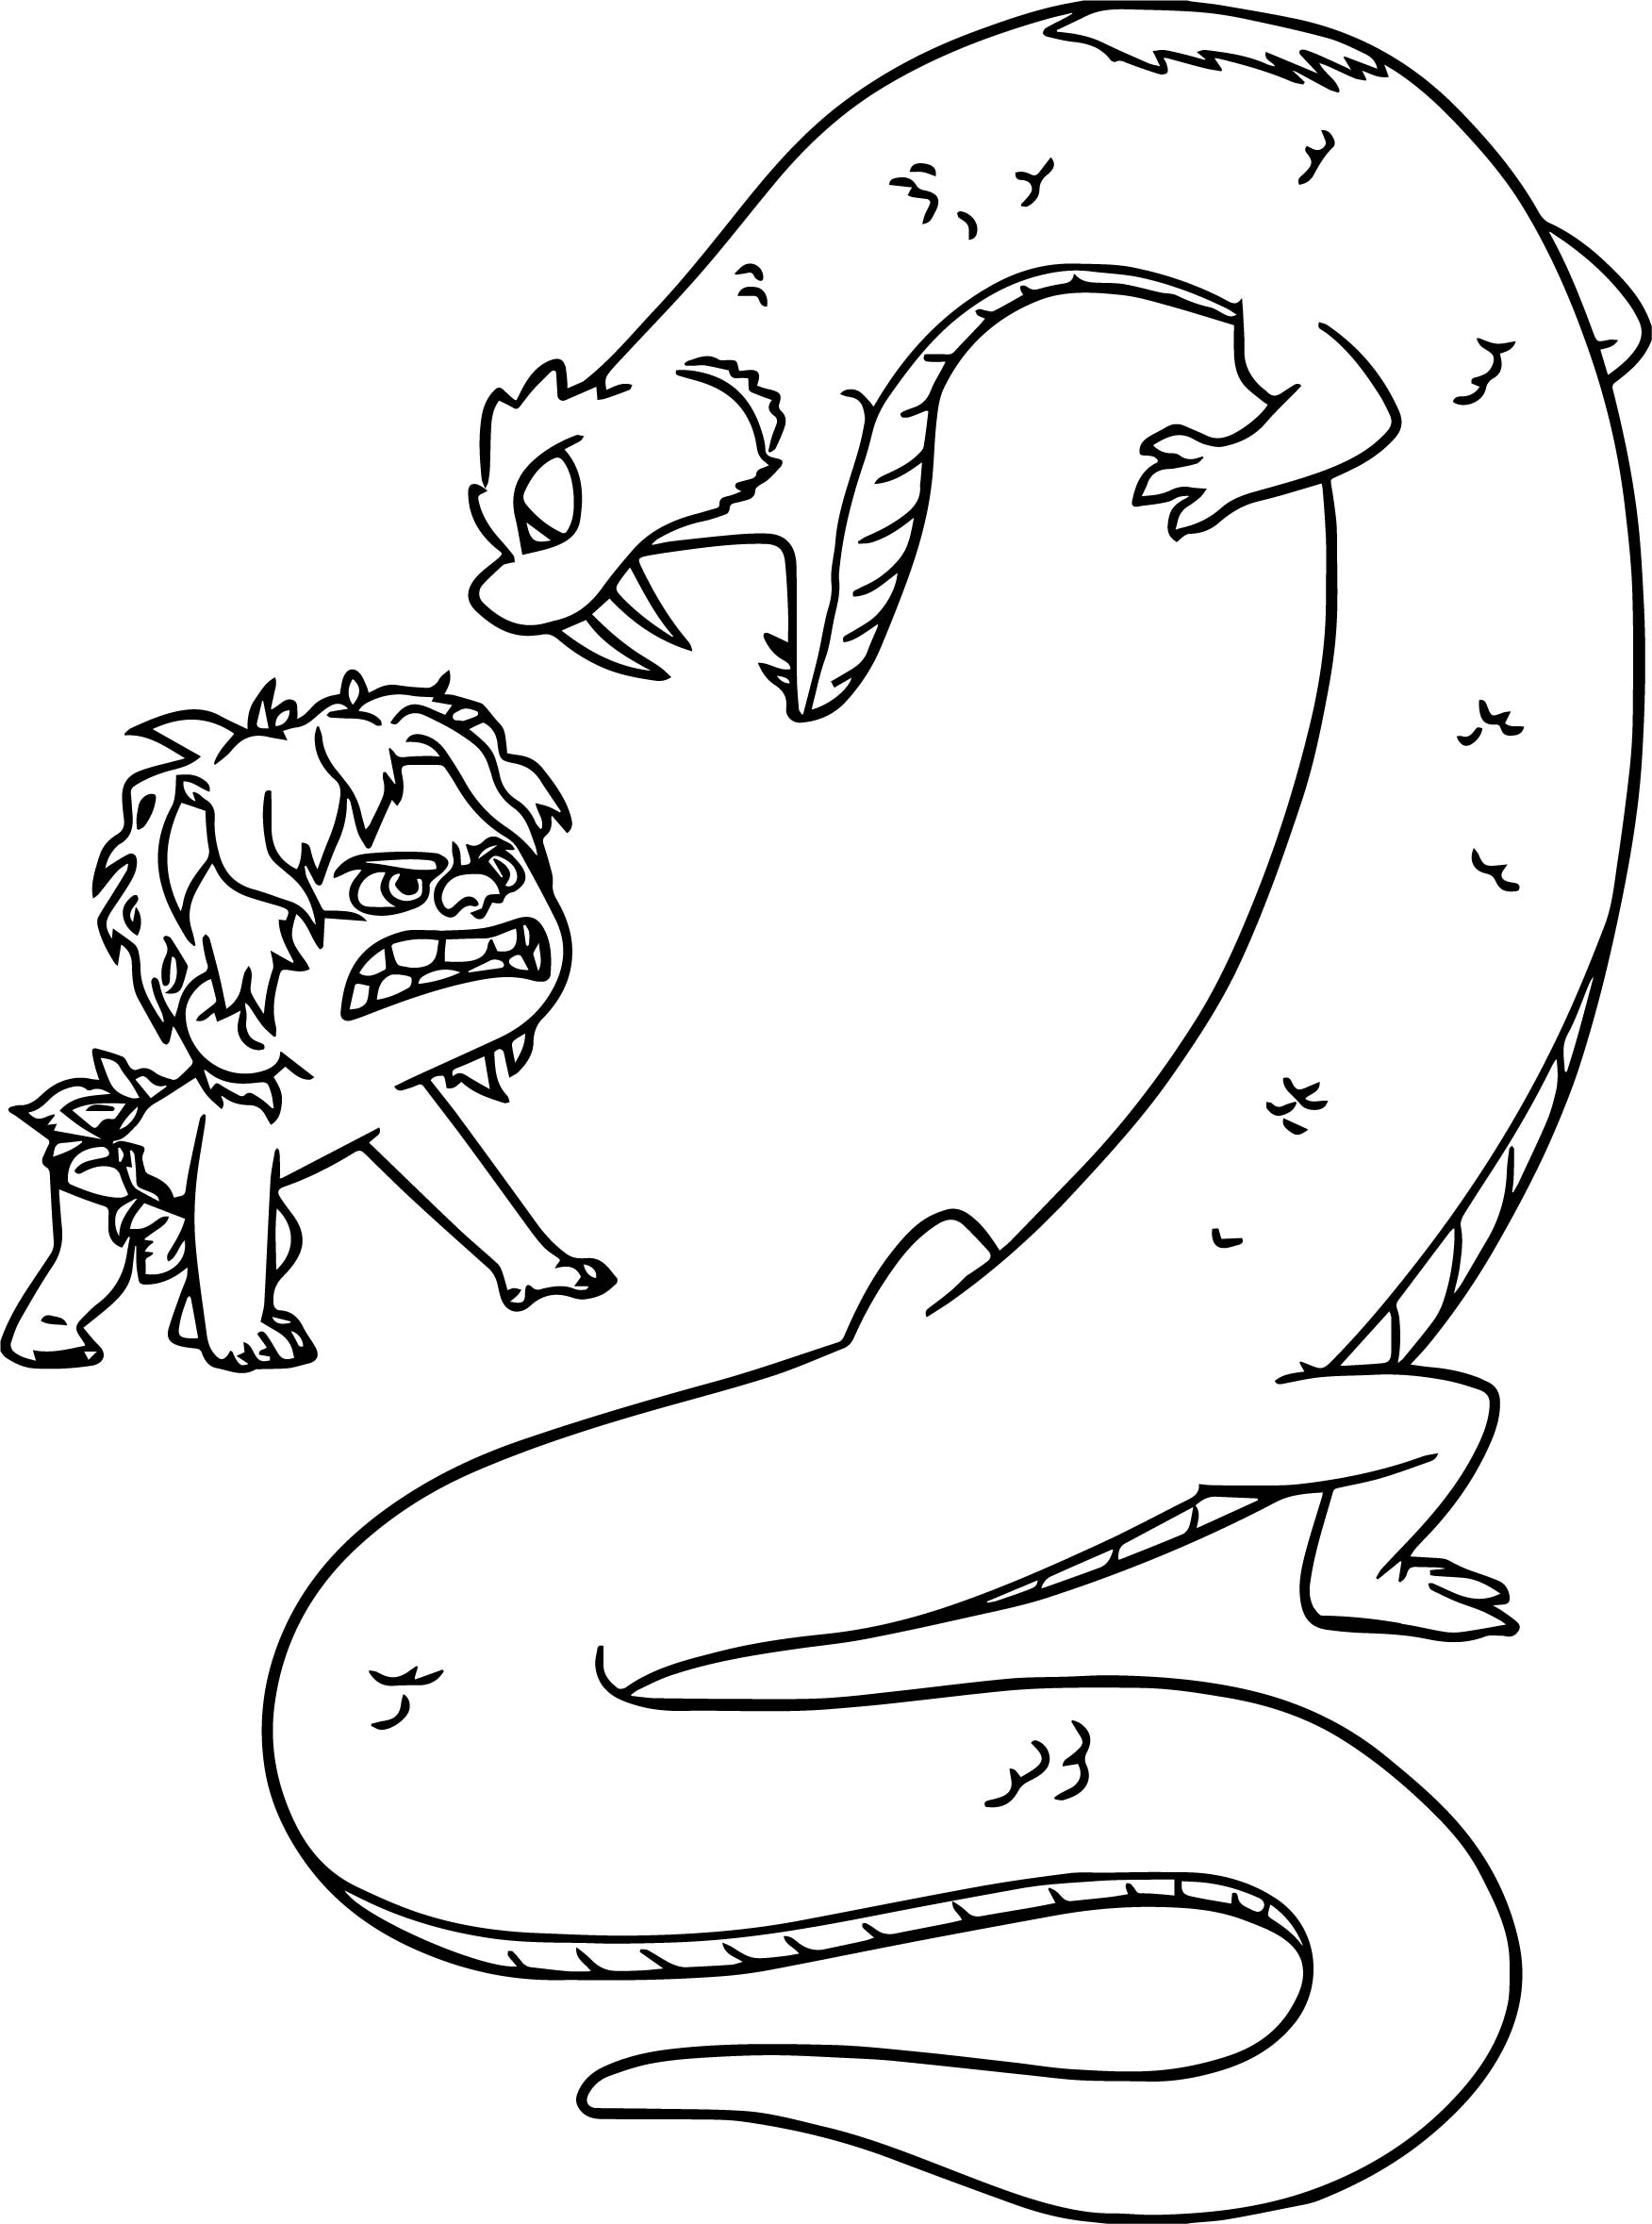 The Good Dinosaur Disney Spot Monster Cartoon Coloring Pages